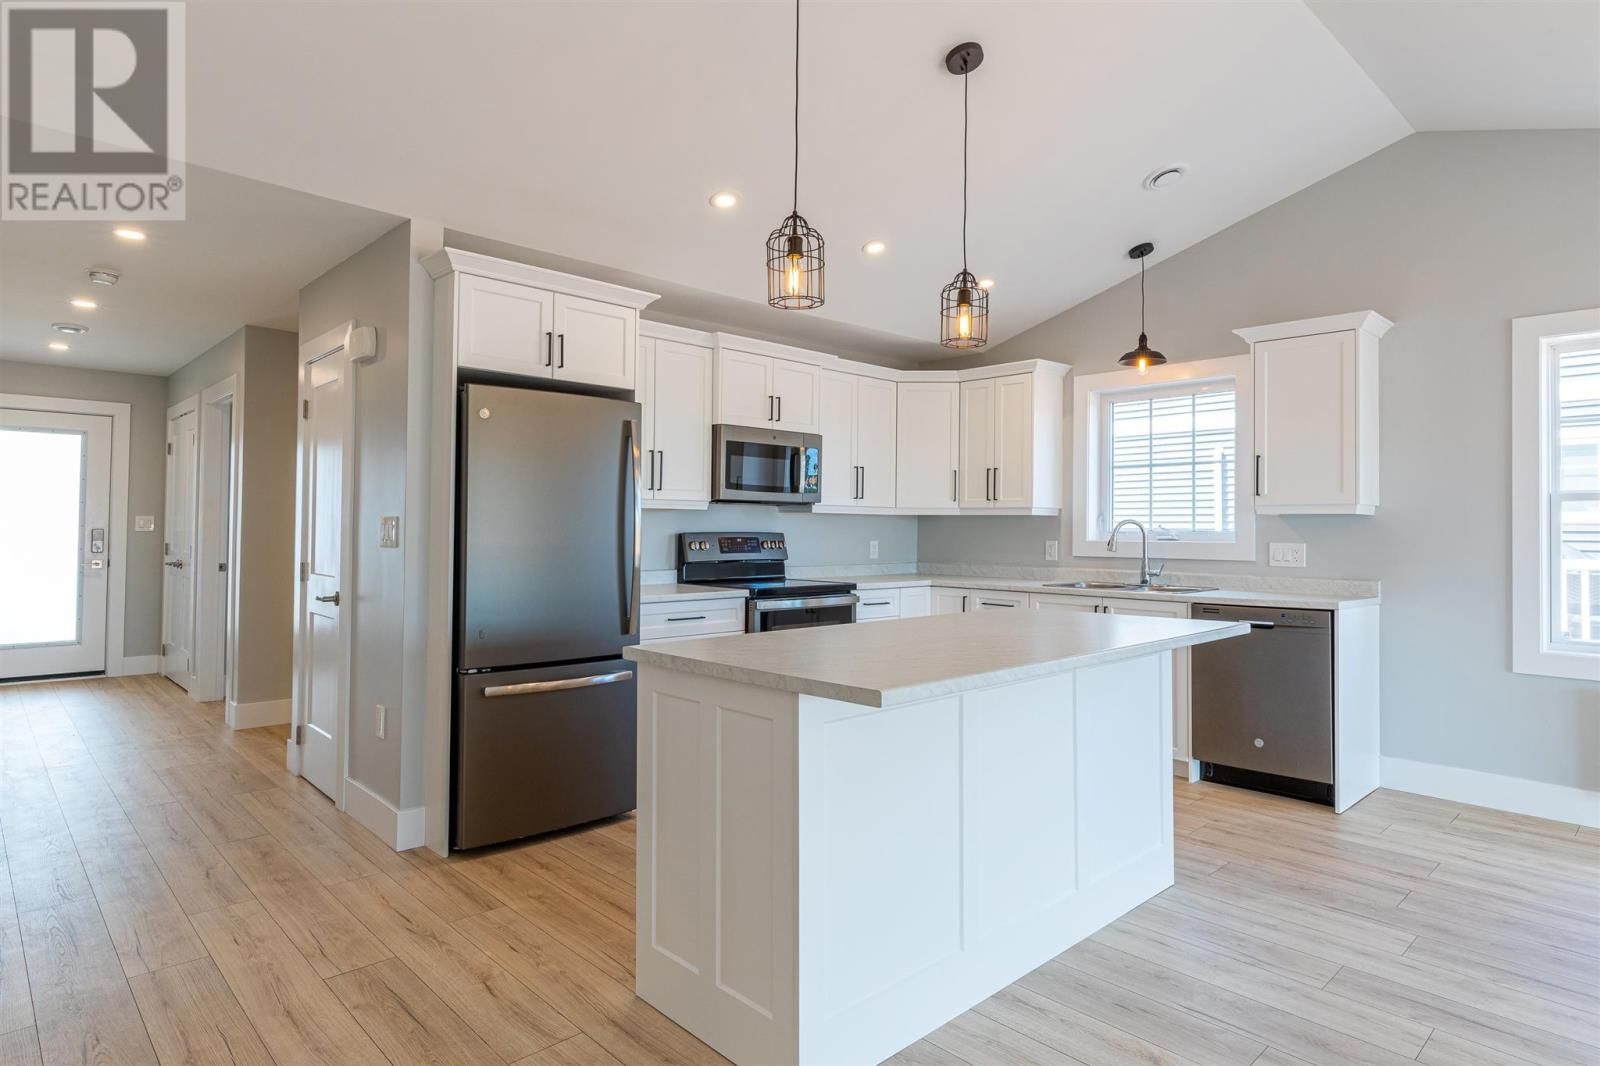 Main Photo: 144 Putter Street in Summerside: House for sale : MLS®# 202124842